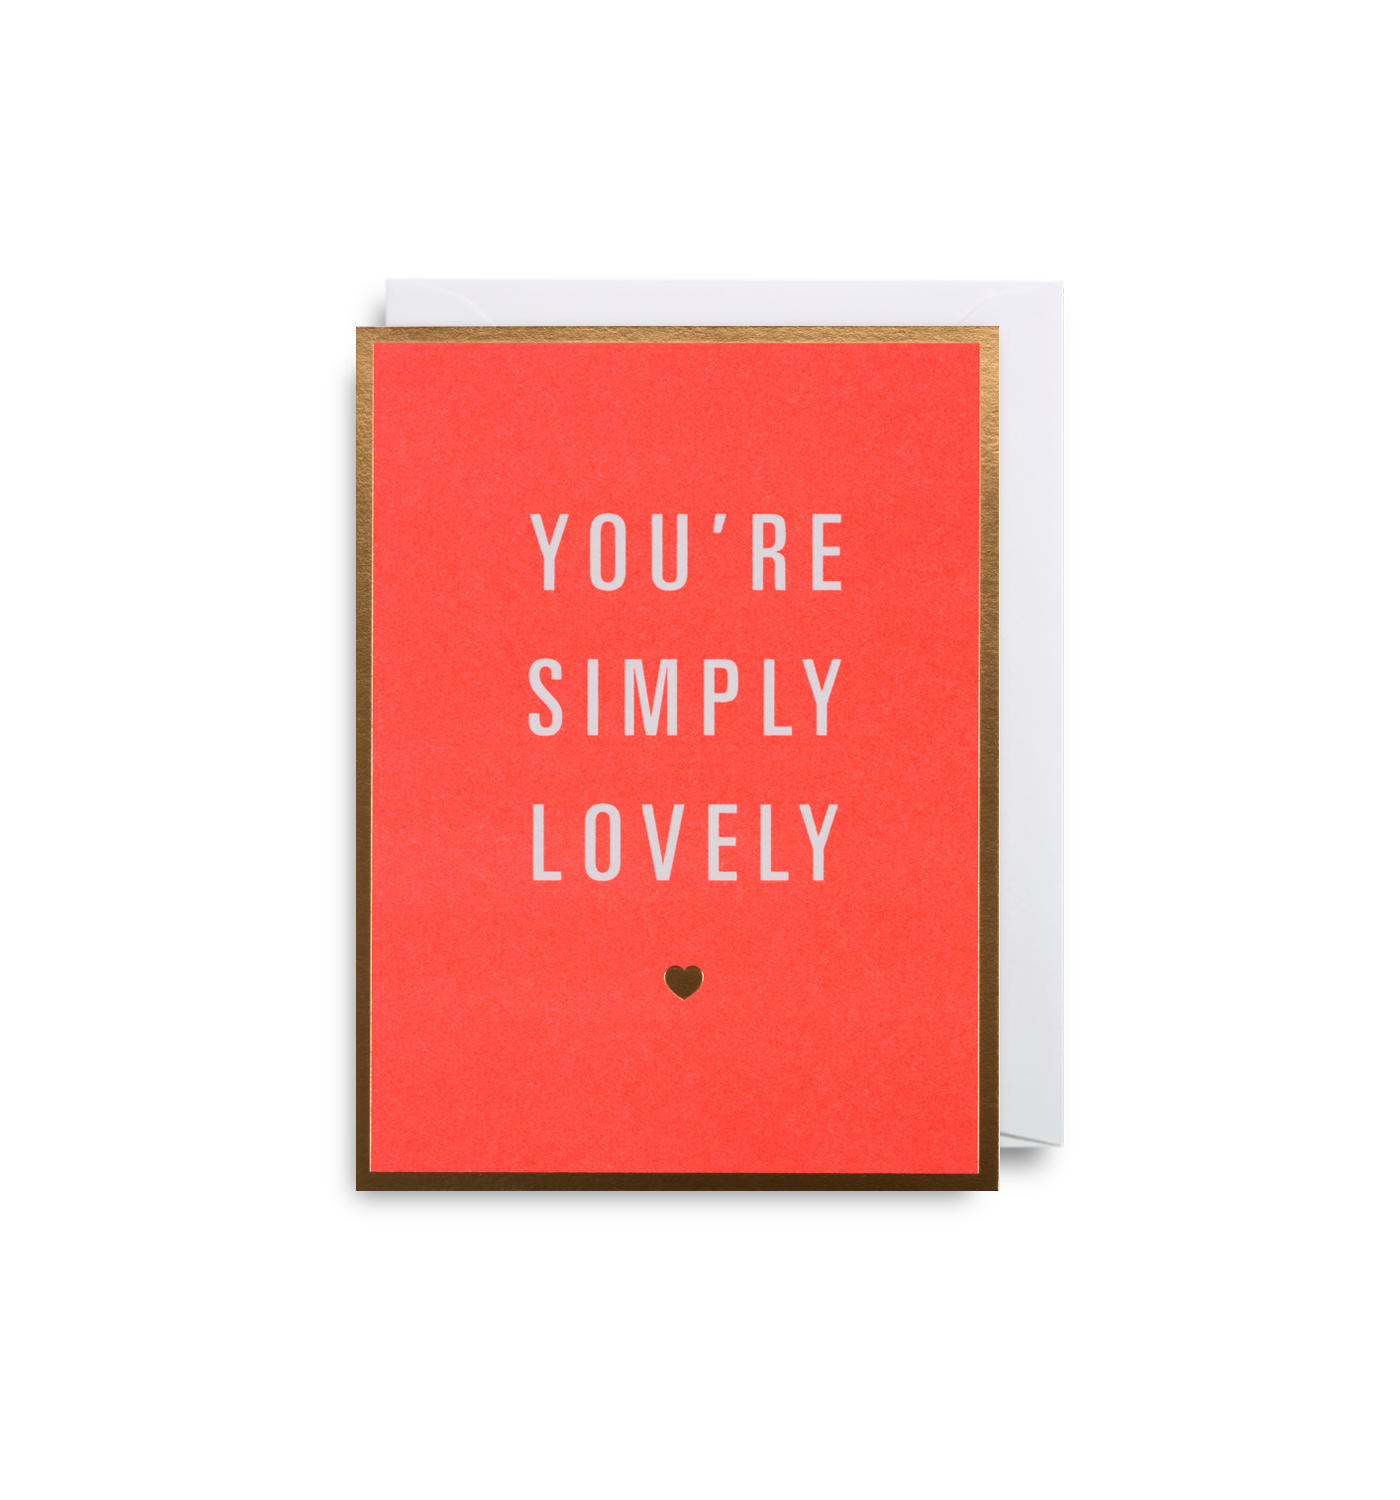 You're Simply Lovely - Mini Card - Five And Dime